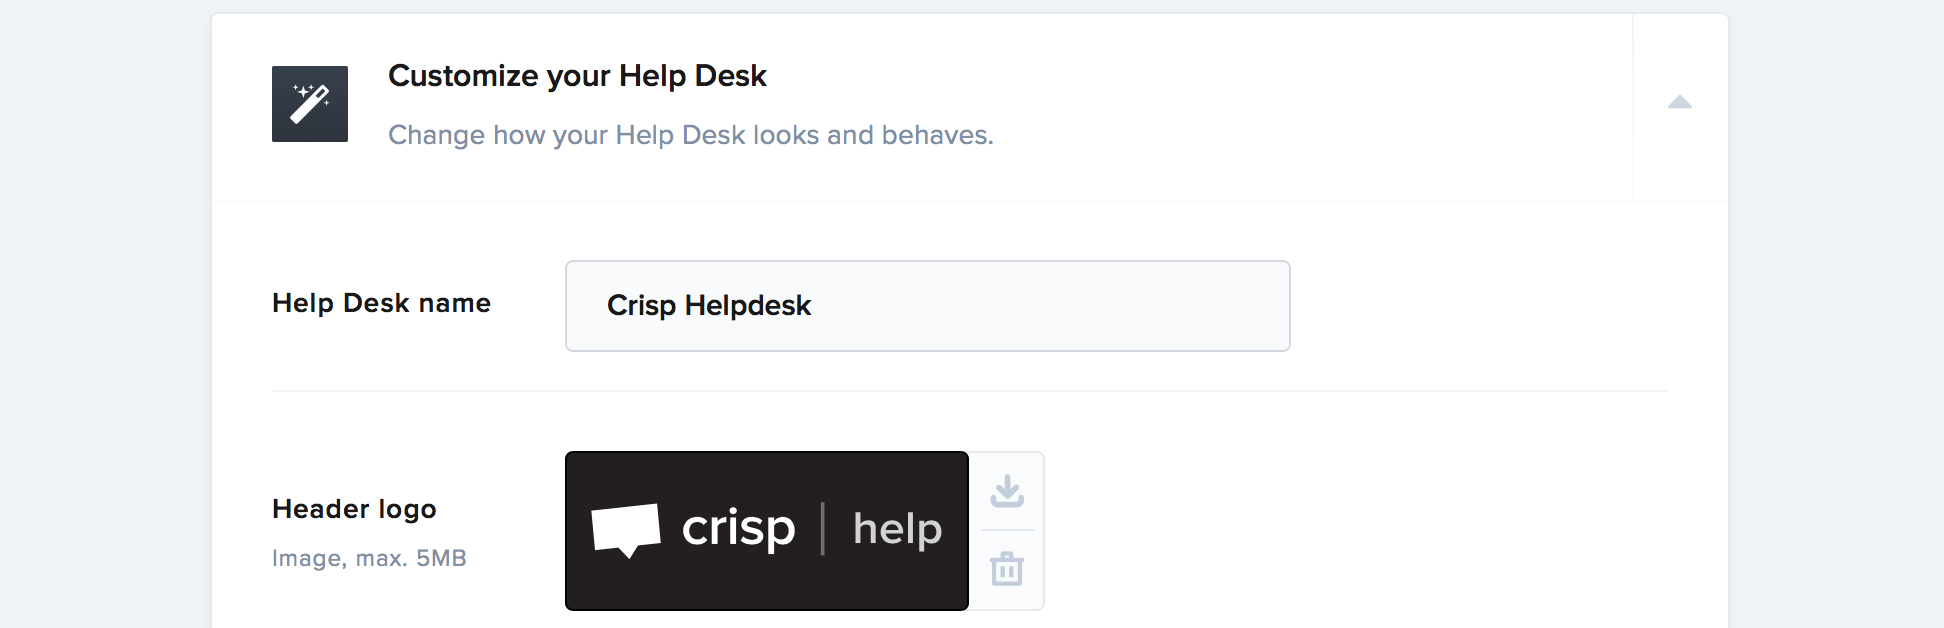 The Helpdesk customization settings